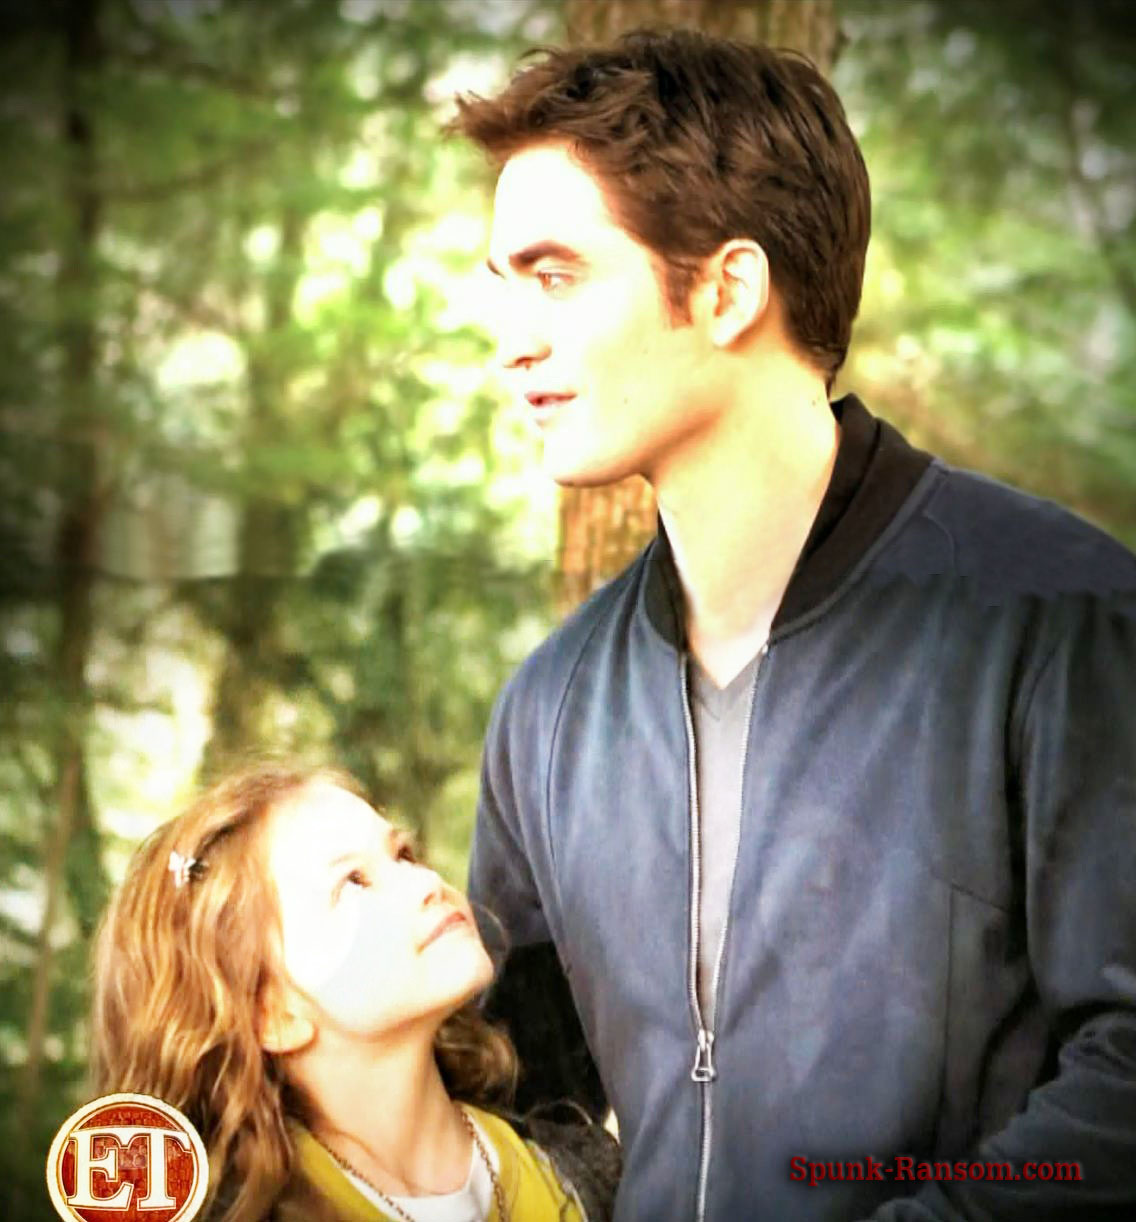 http://www.strictlyrobsten.com/wp-content/uploads/2012/08/Capture6.jpeg